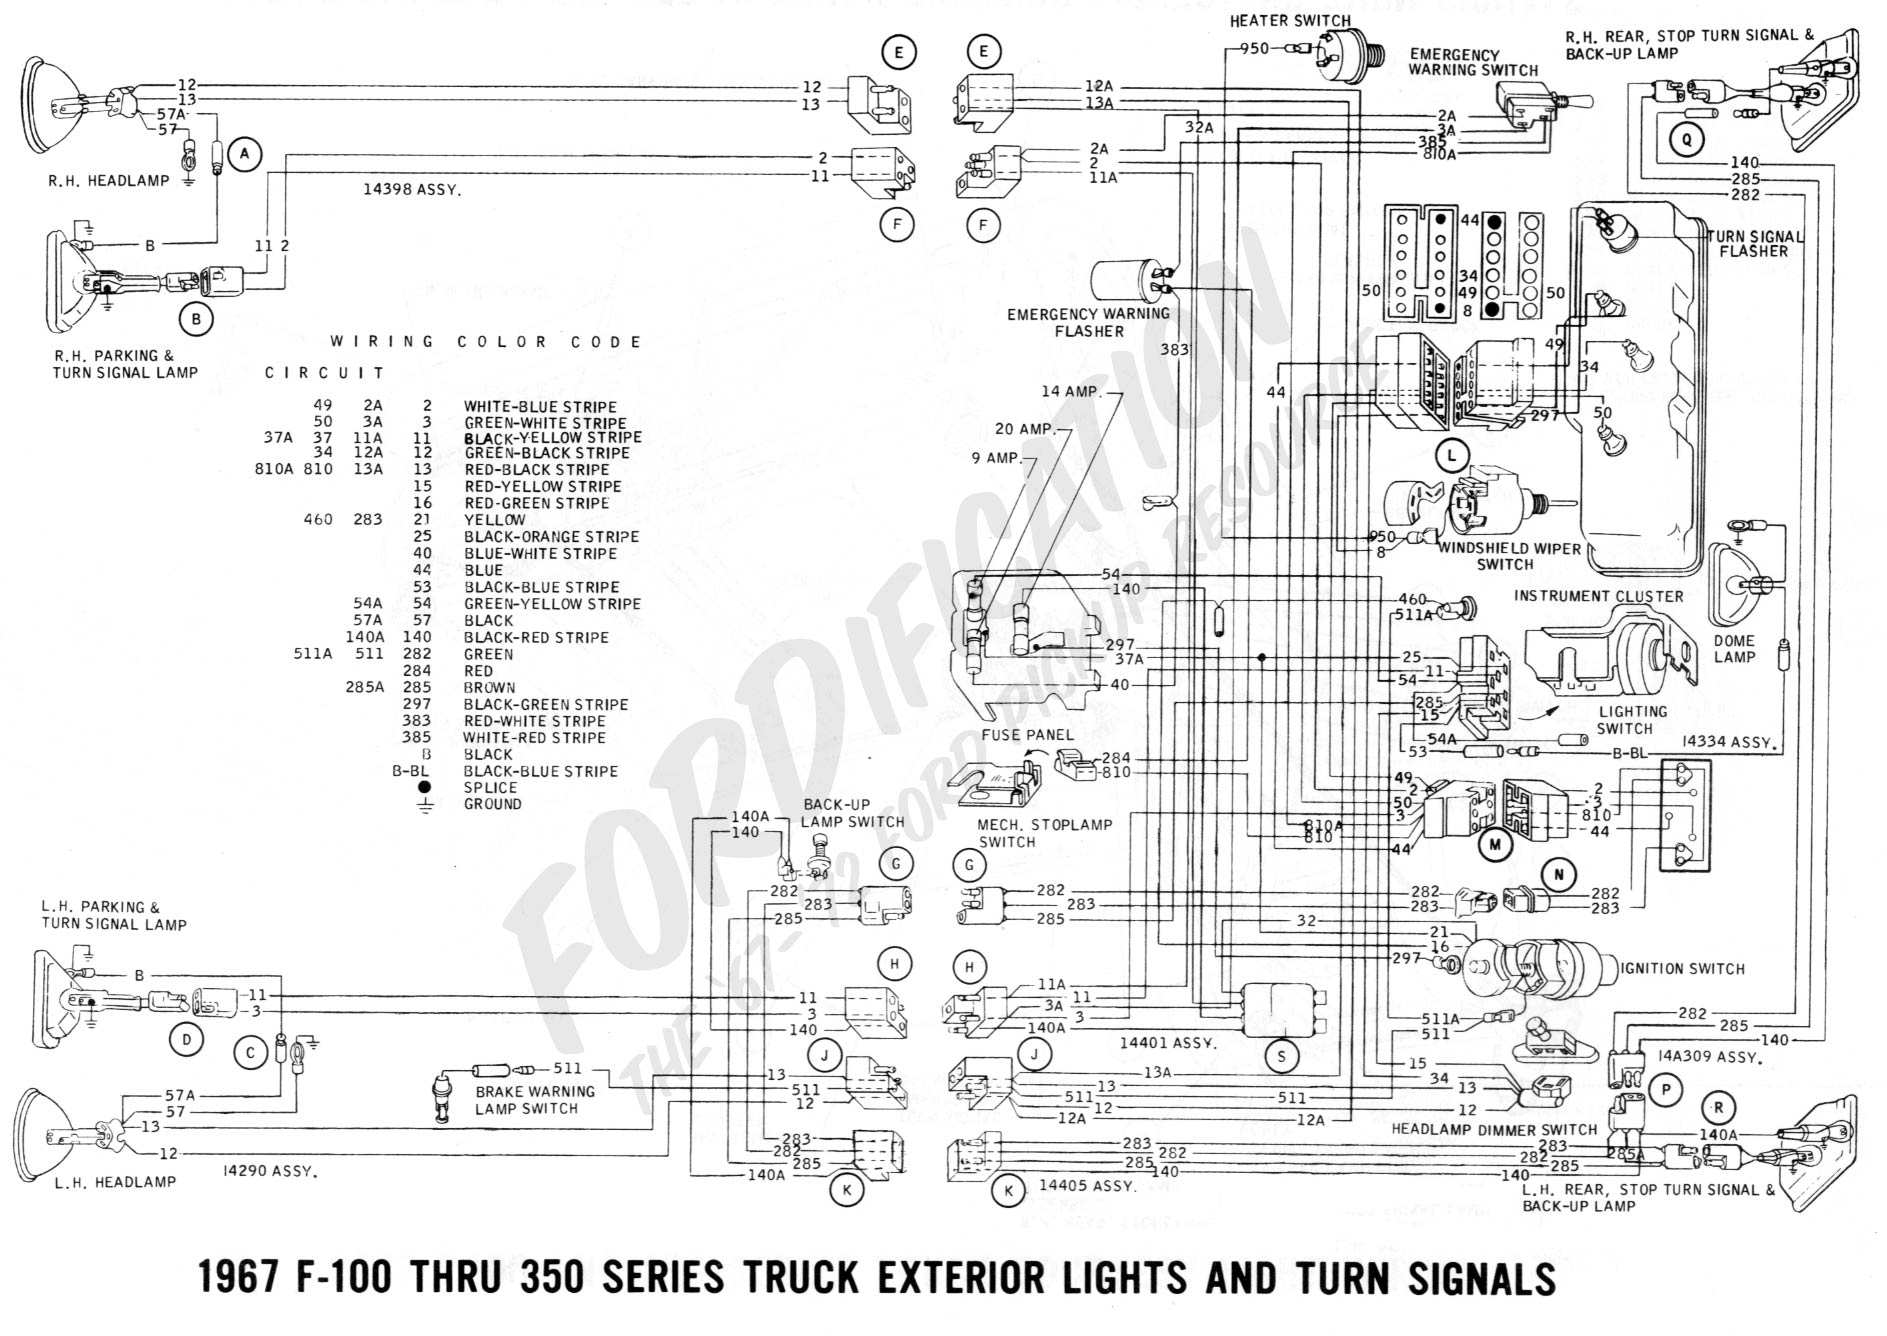 82 F150 Brake Light Wiring Diagram | Wiring Diagram - 02 F350 Trailer Wiring Diagram